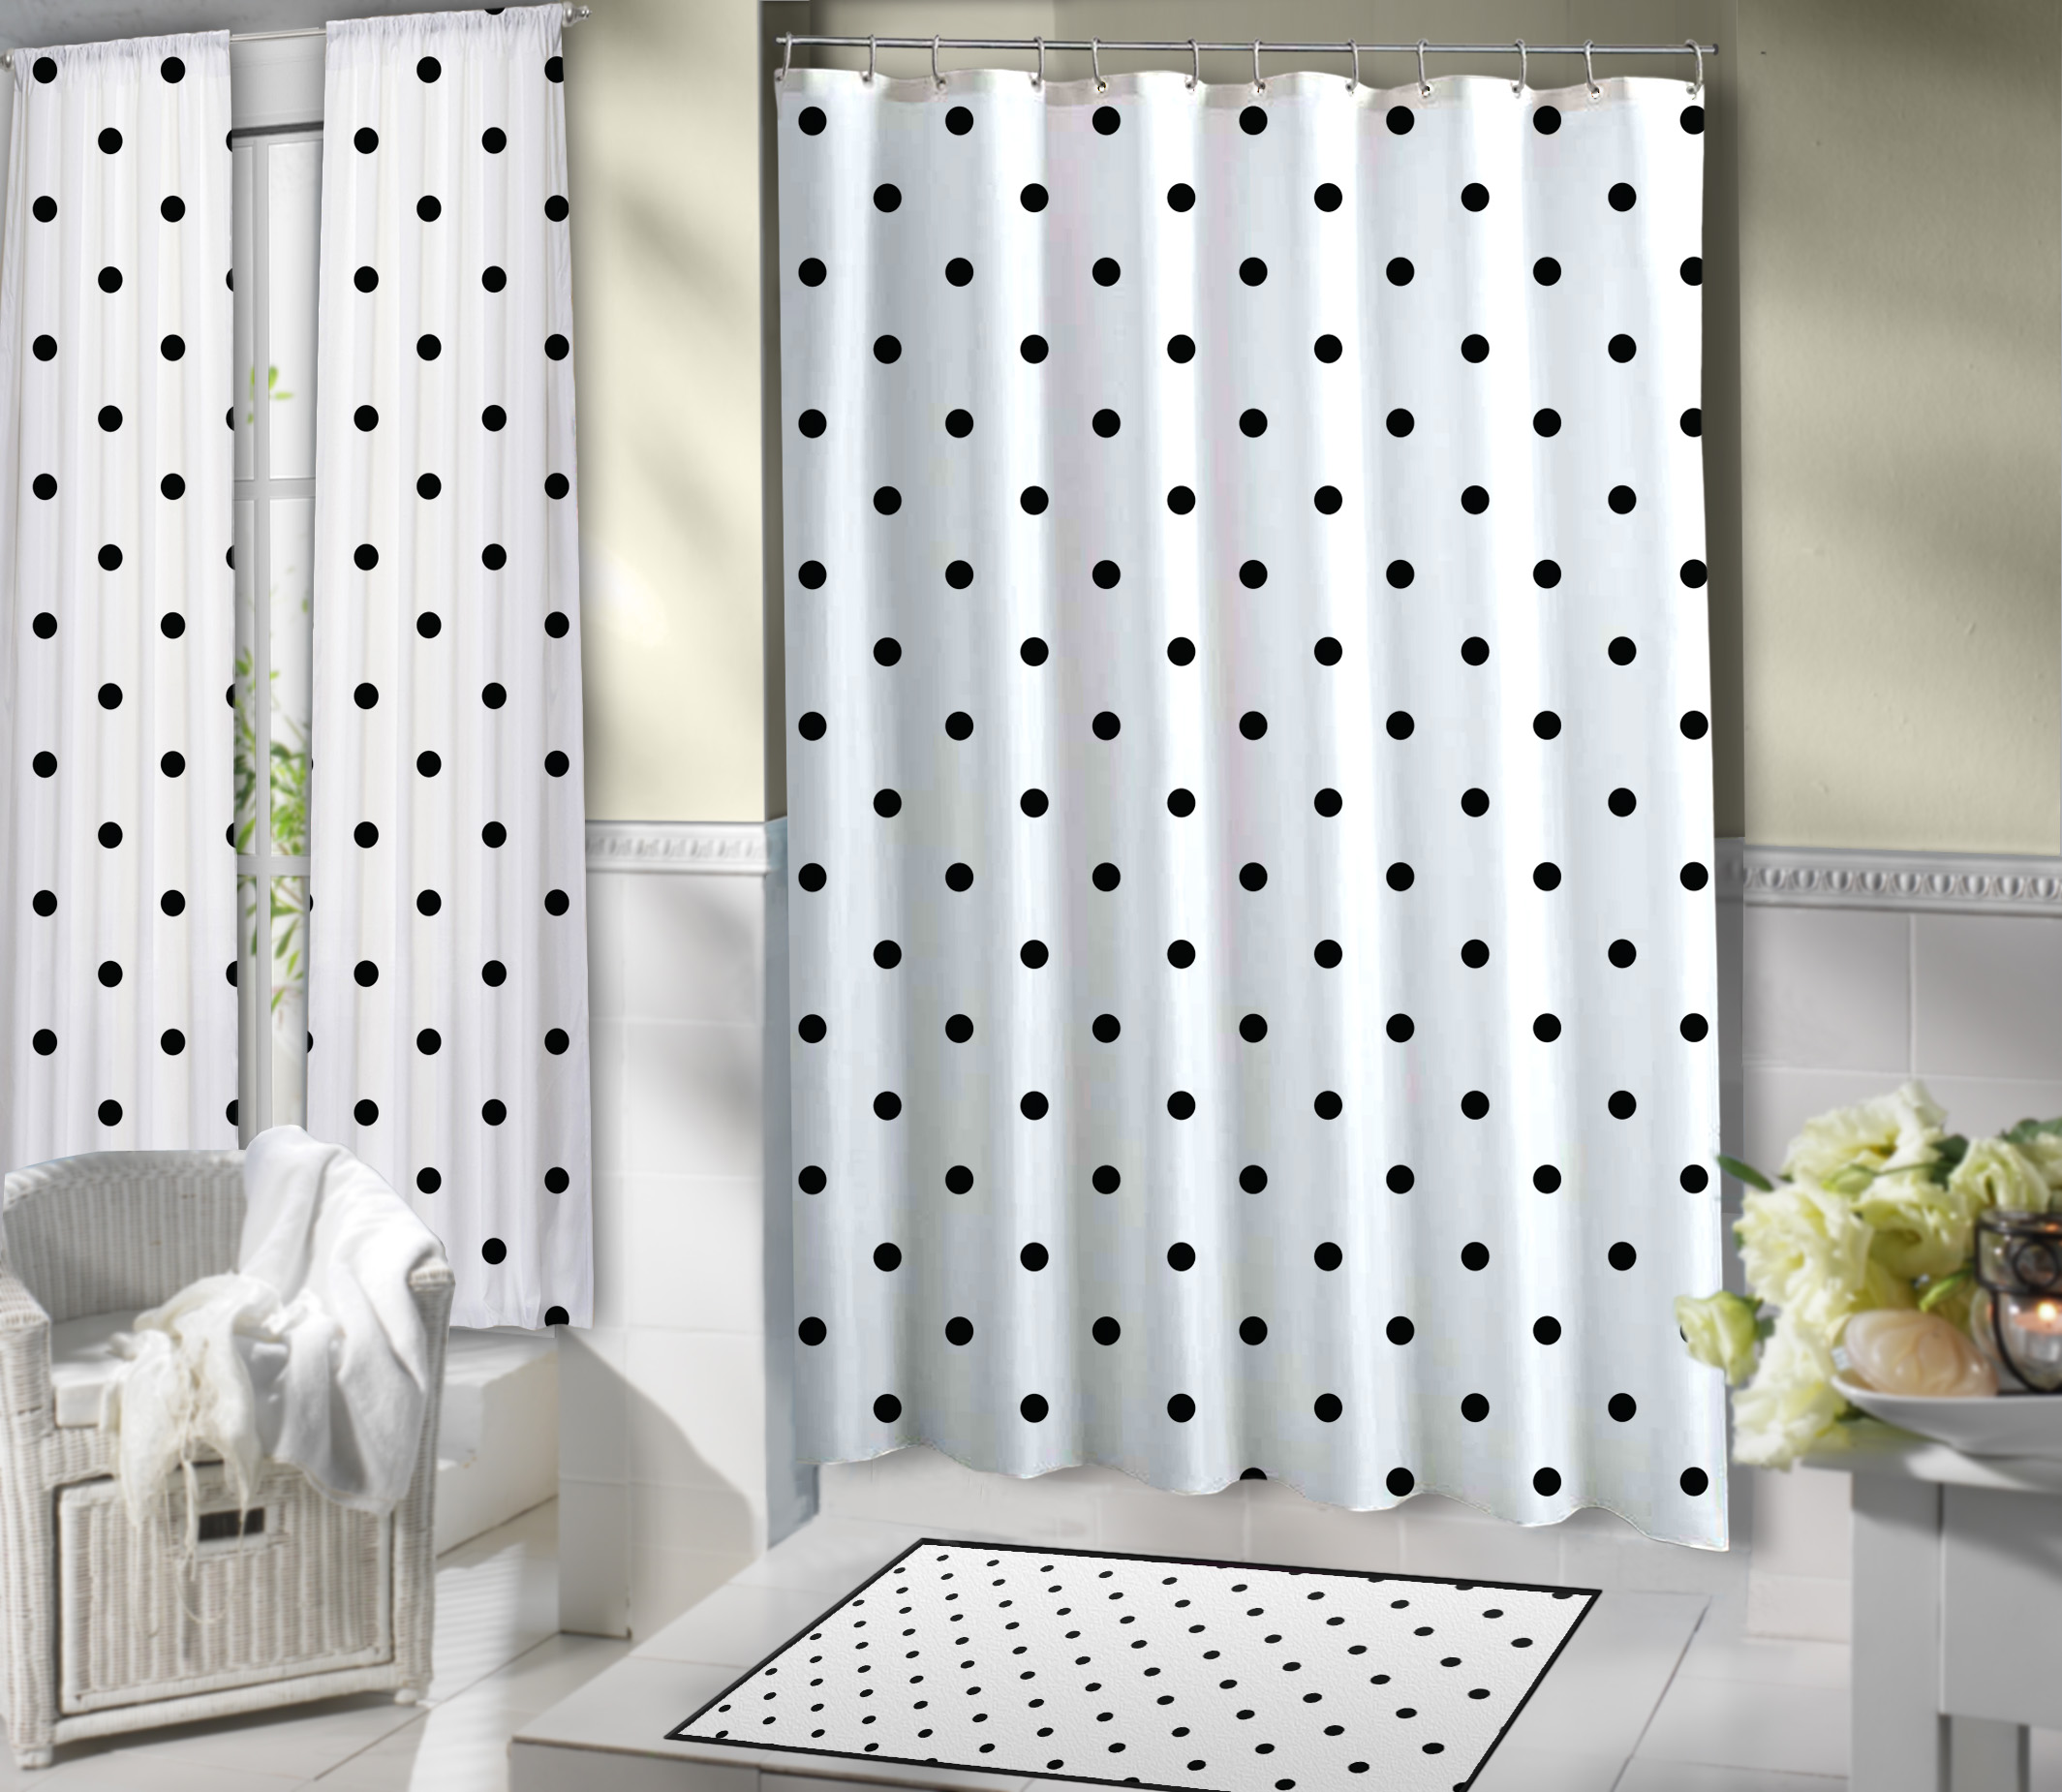 black and white polka dot shower curtain 97 eloquent innovations. Black Bedroom Furniture Sets. Home Design Ideas